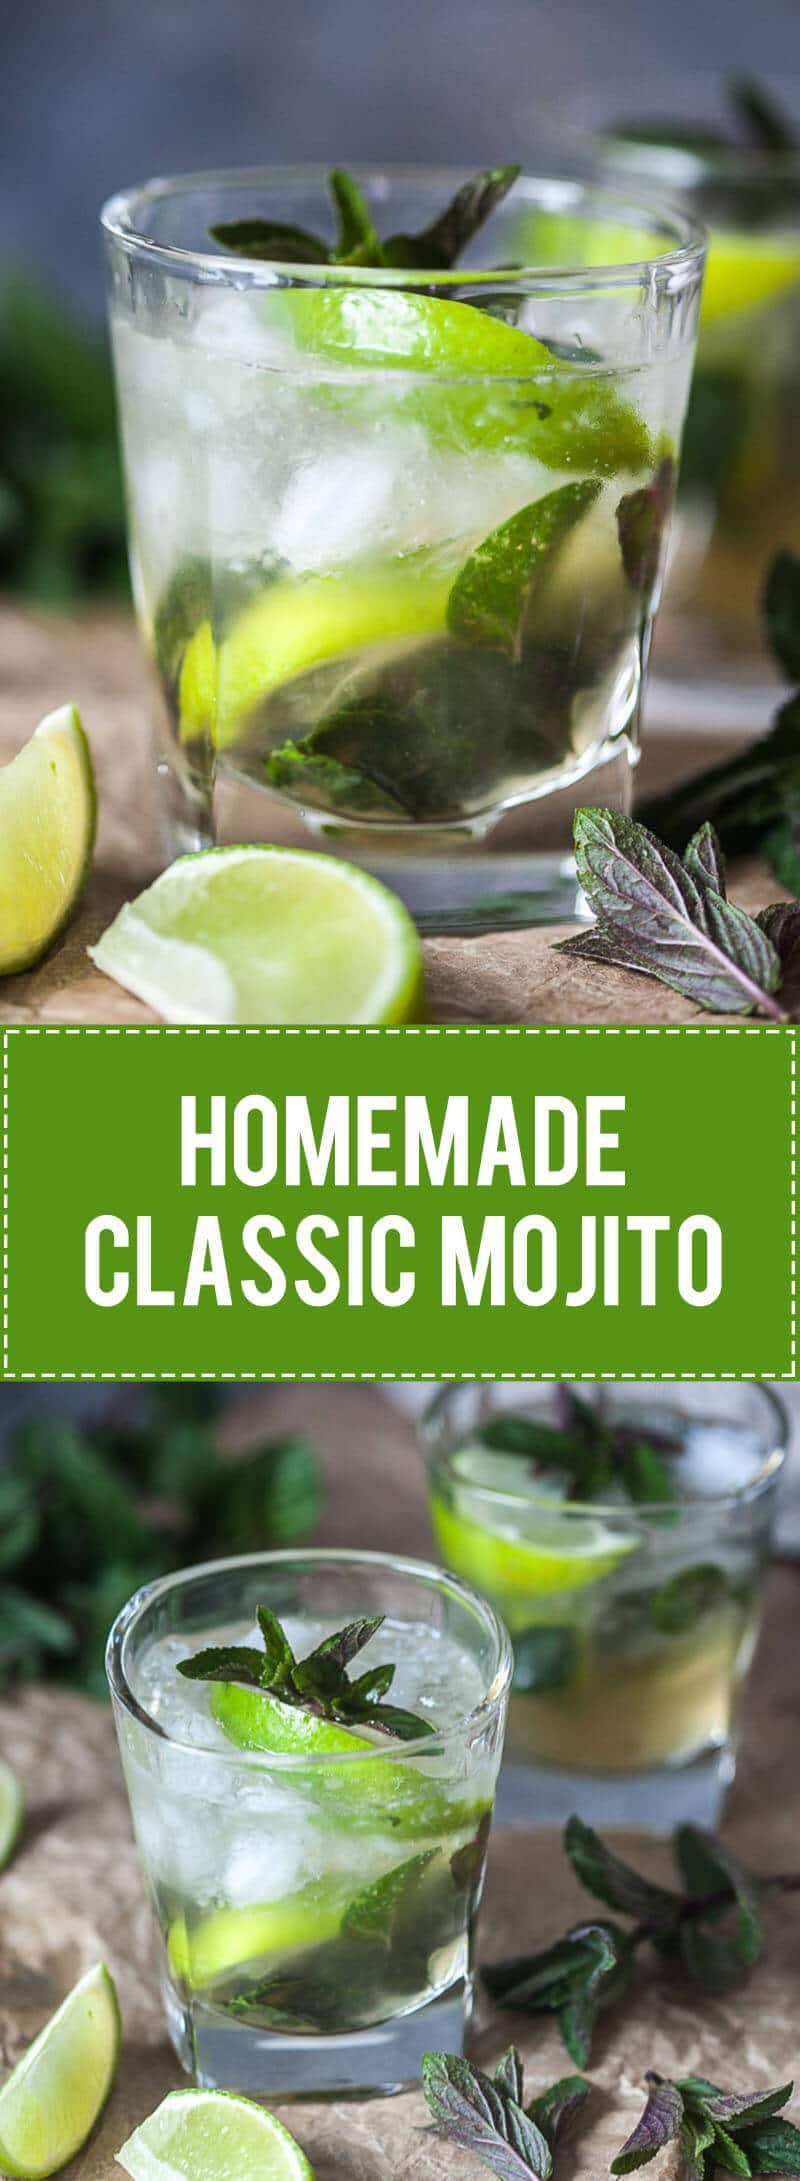 This Homemade Classic Mojito is a refreshing drink enjoyed best in a hot summer eve. | www.vibrantplate.com